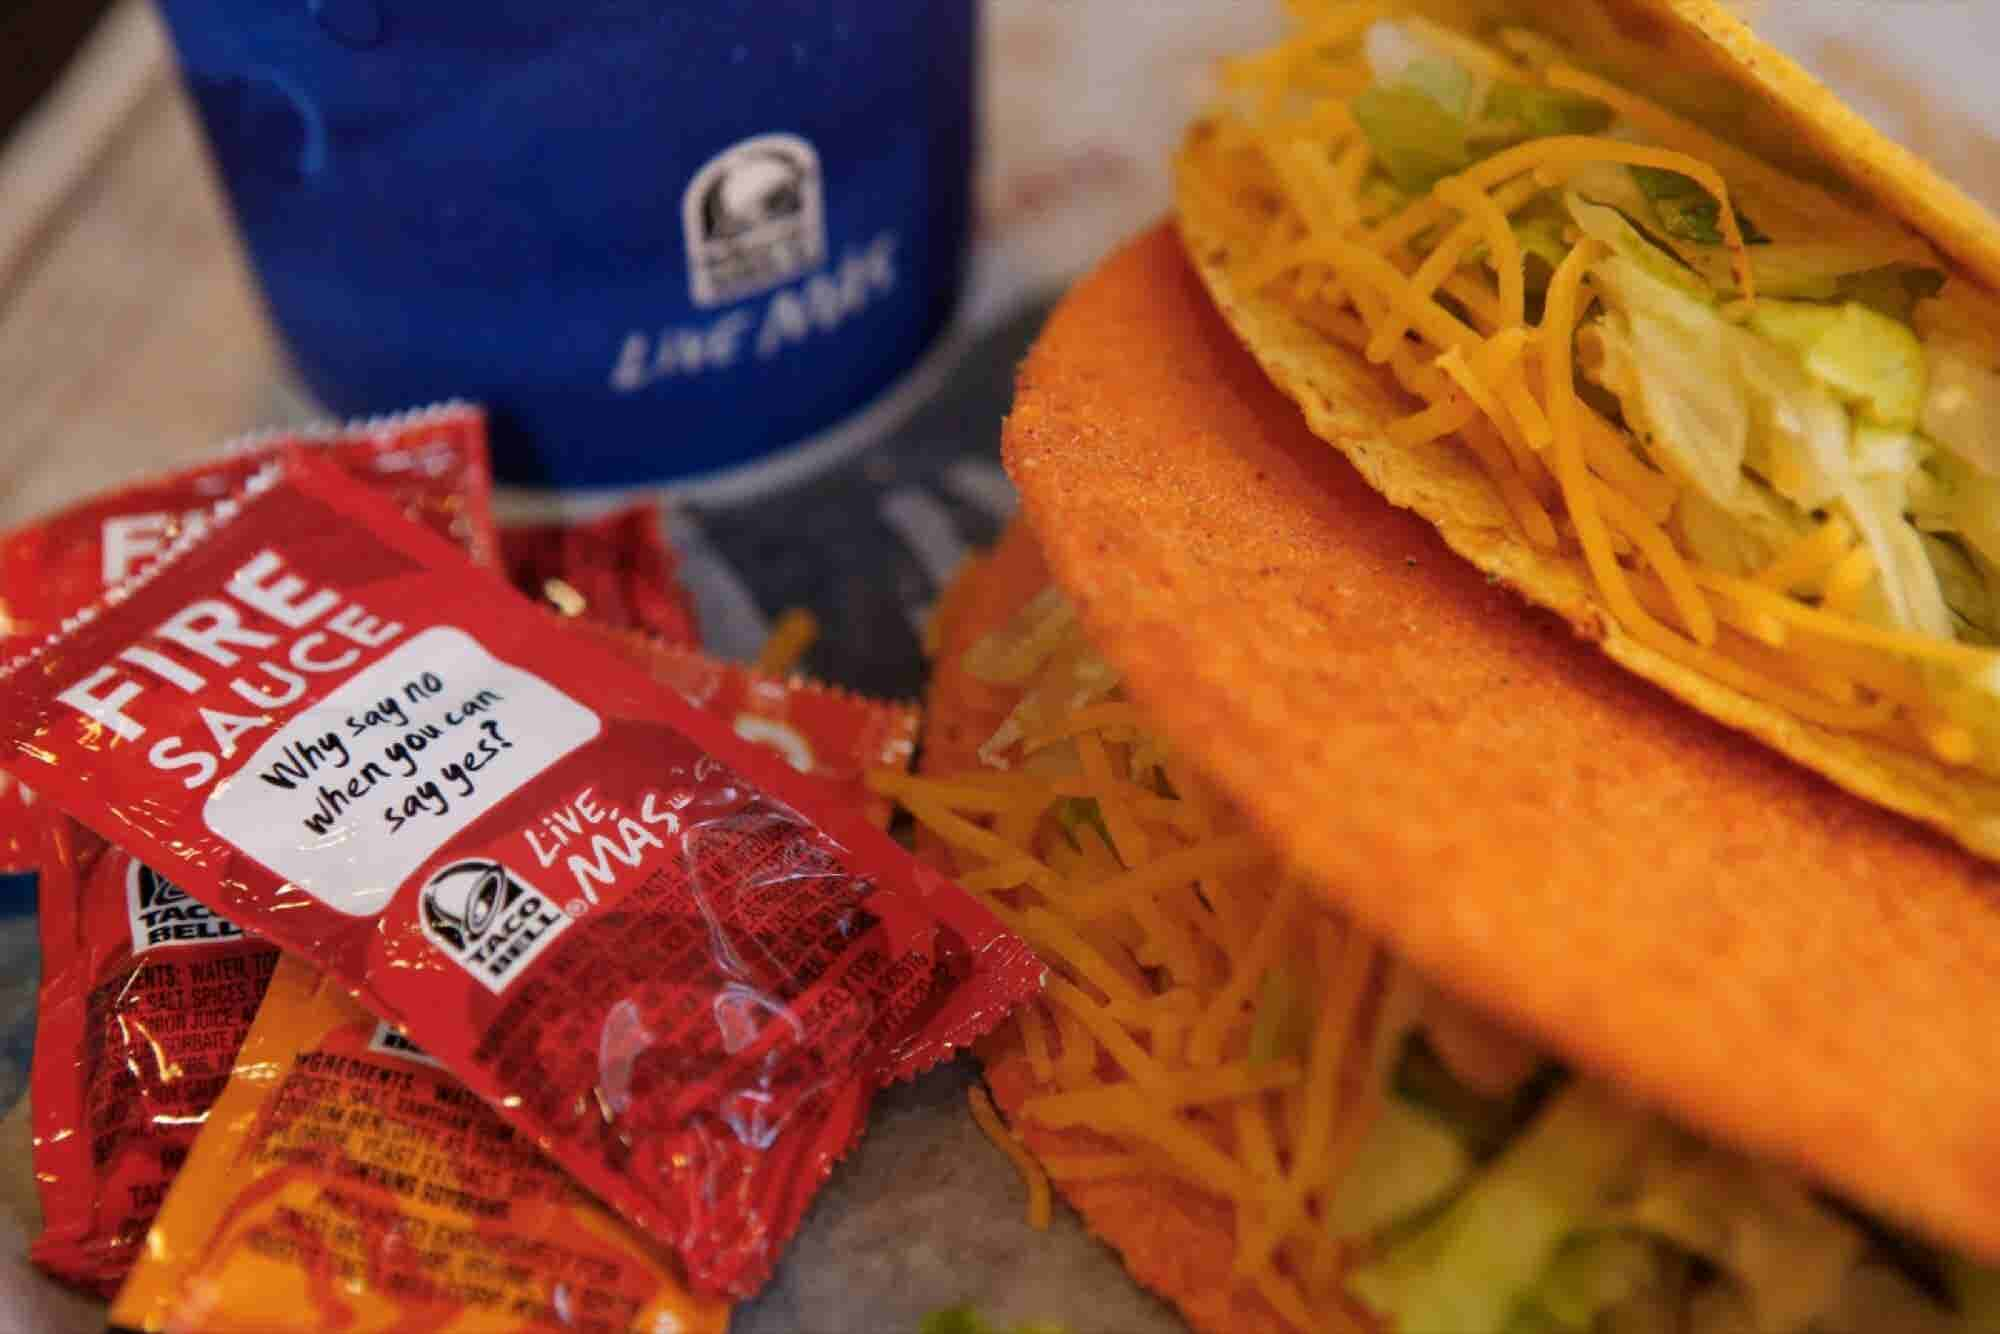 20 Facts You Probably Didn't Know About Taco Bell